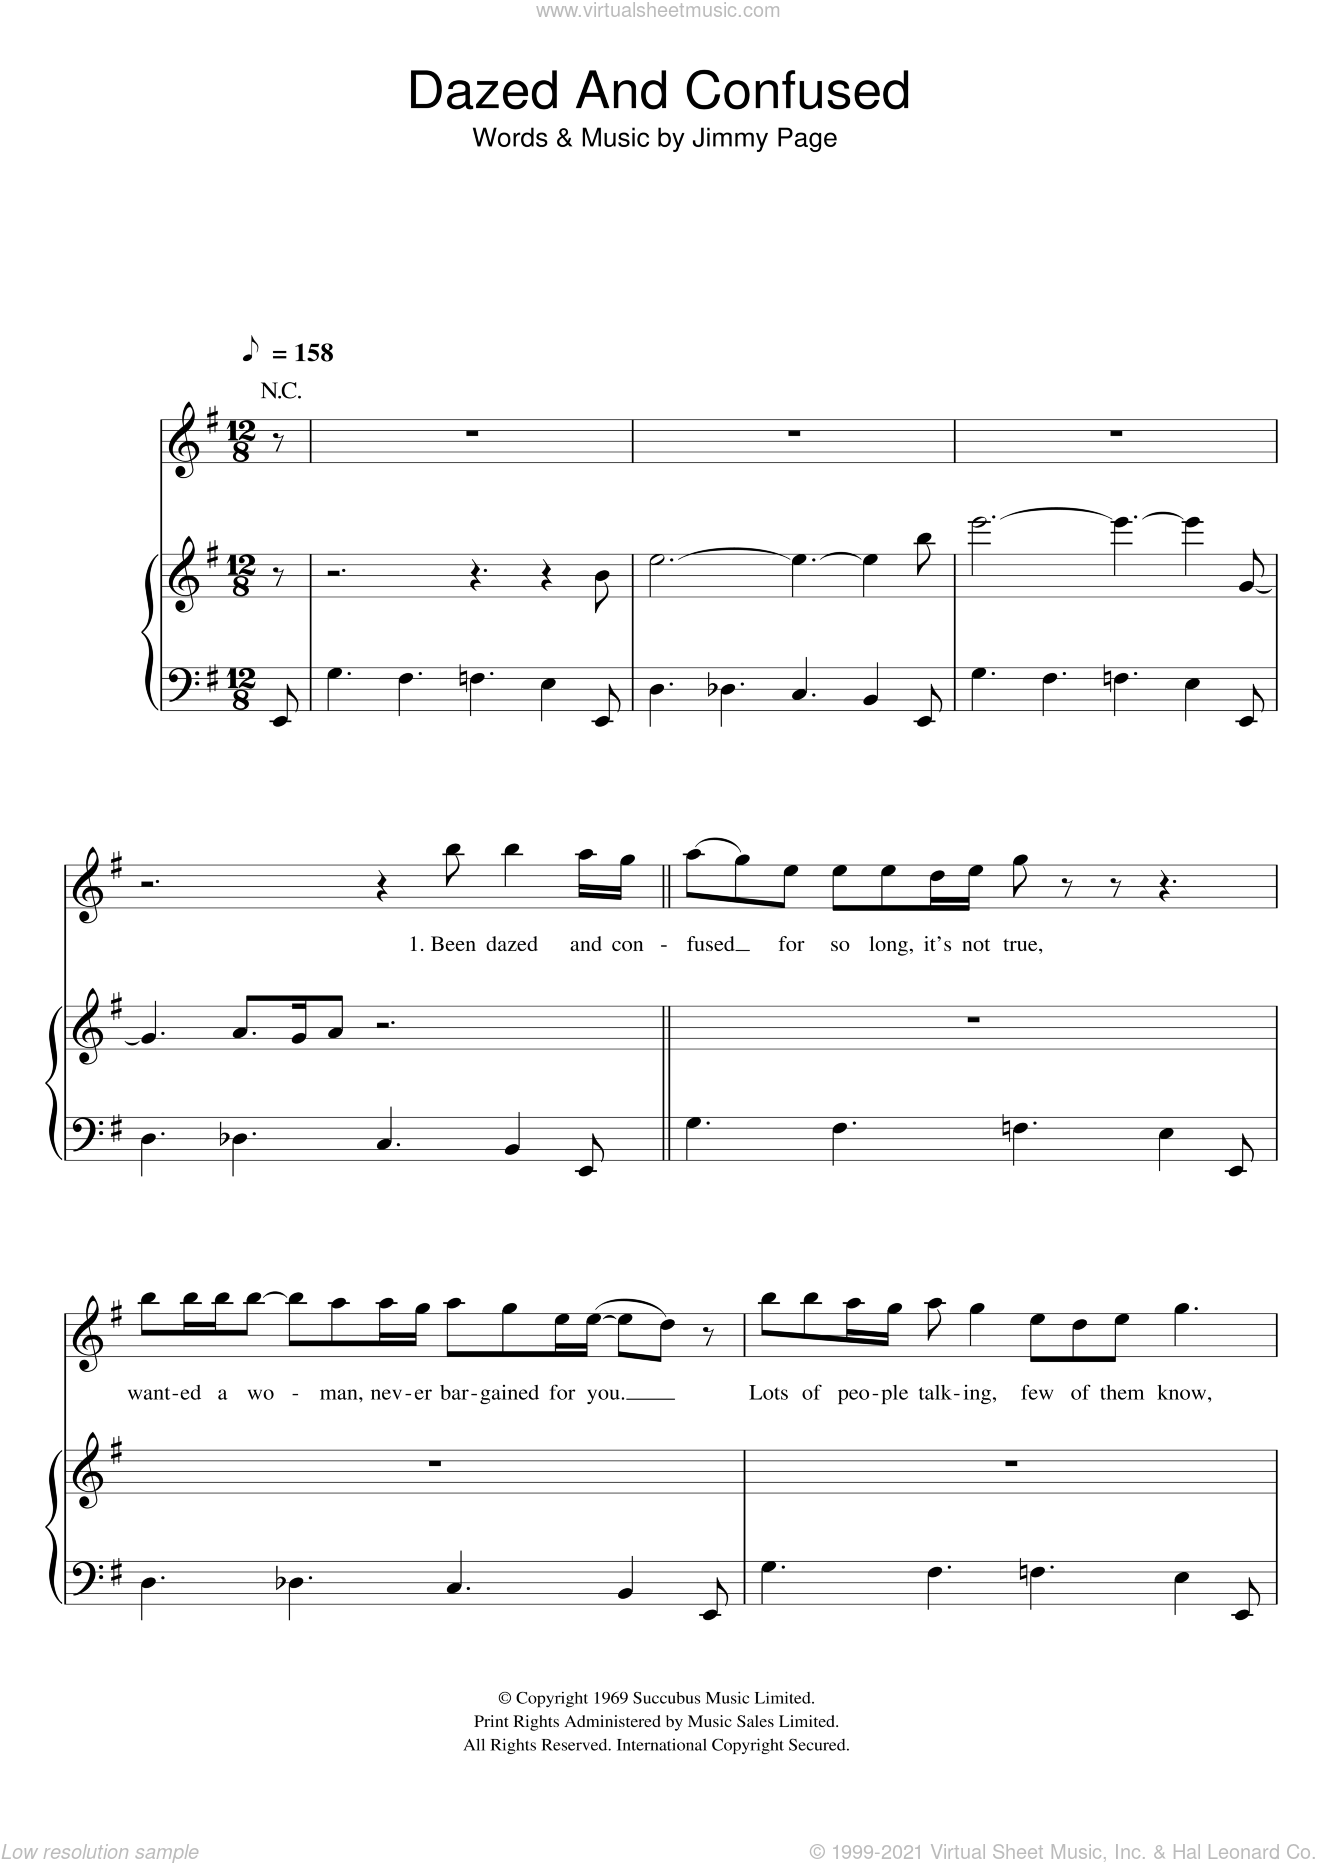 Dazed And Confused sheet music for voice, piano or guitar by Led Zeppelin and Jimmy Page, intermediate skill level